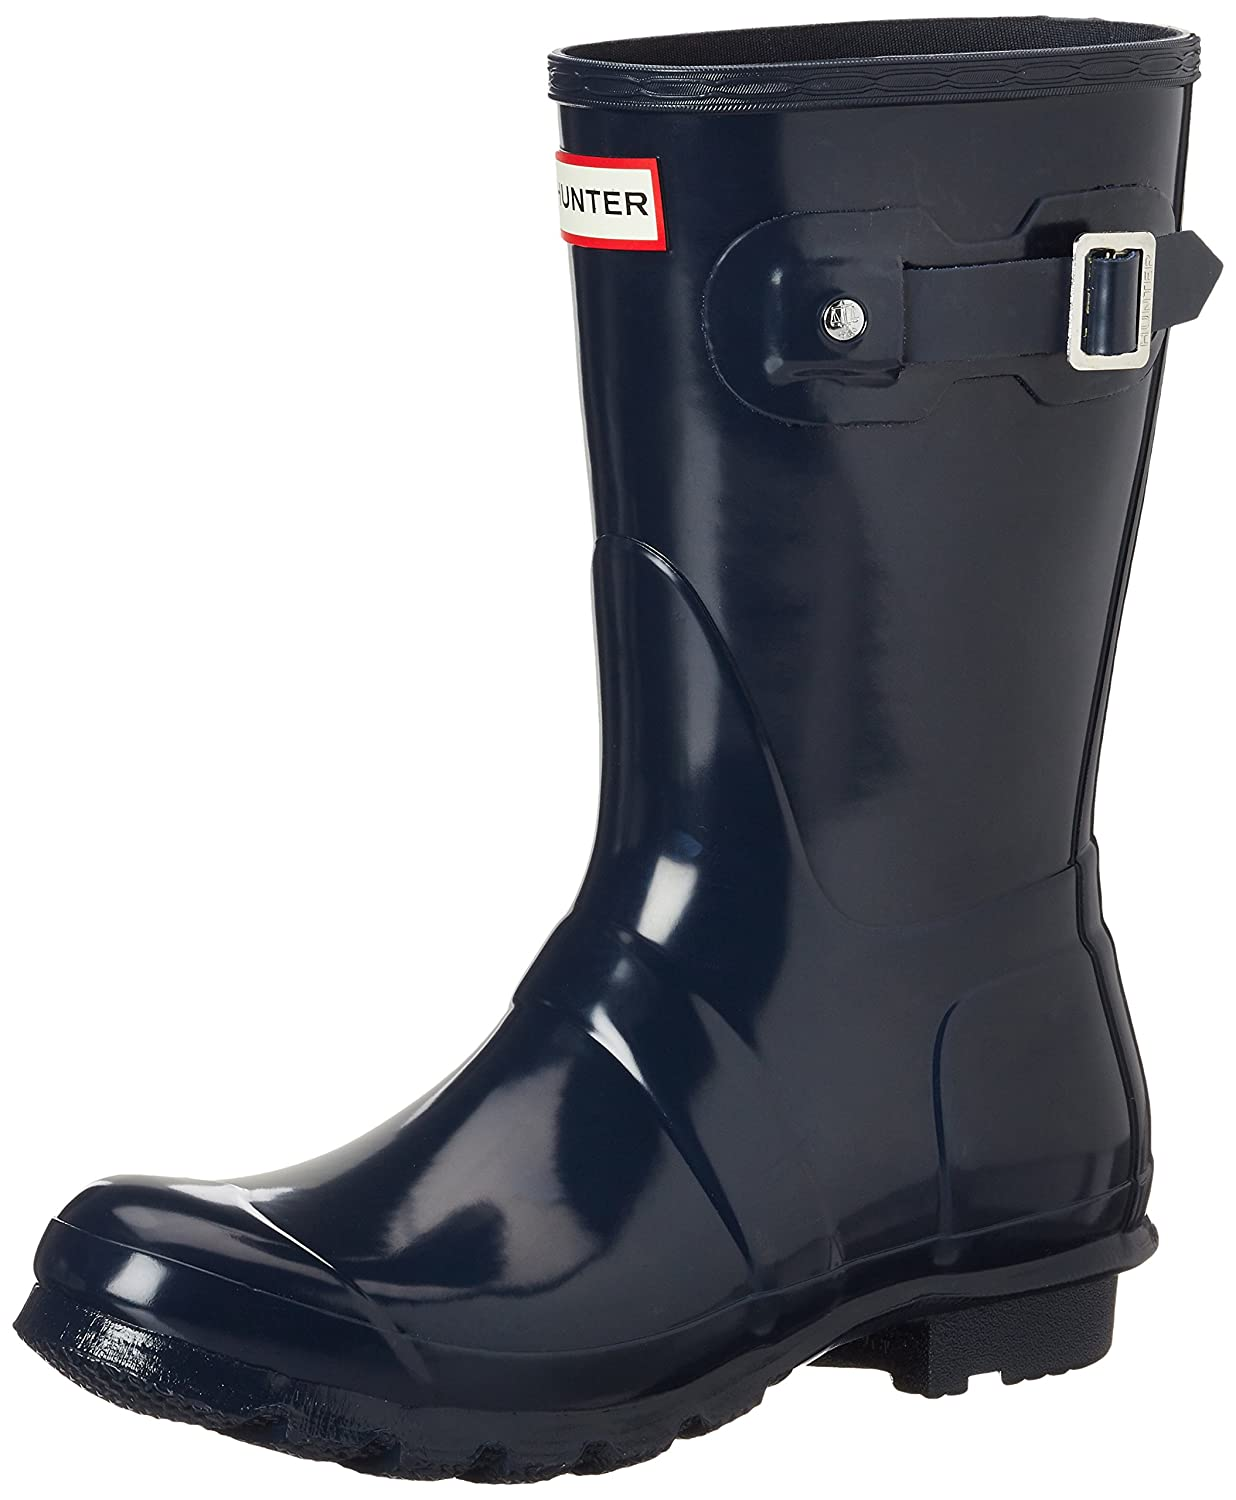 Hunter Women's Original Short Gloss Rain Boots B01LYEWSM4 5 B(M) US|Navy